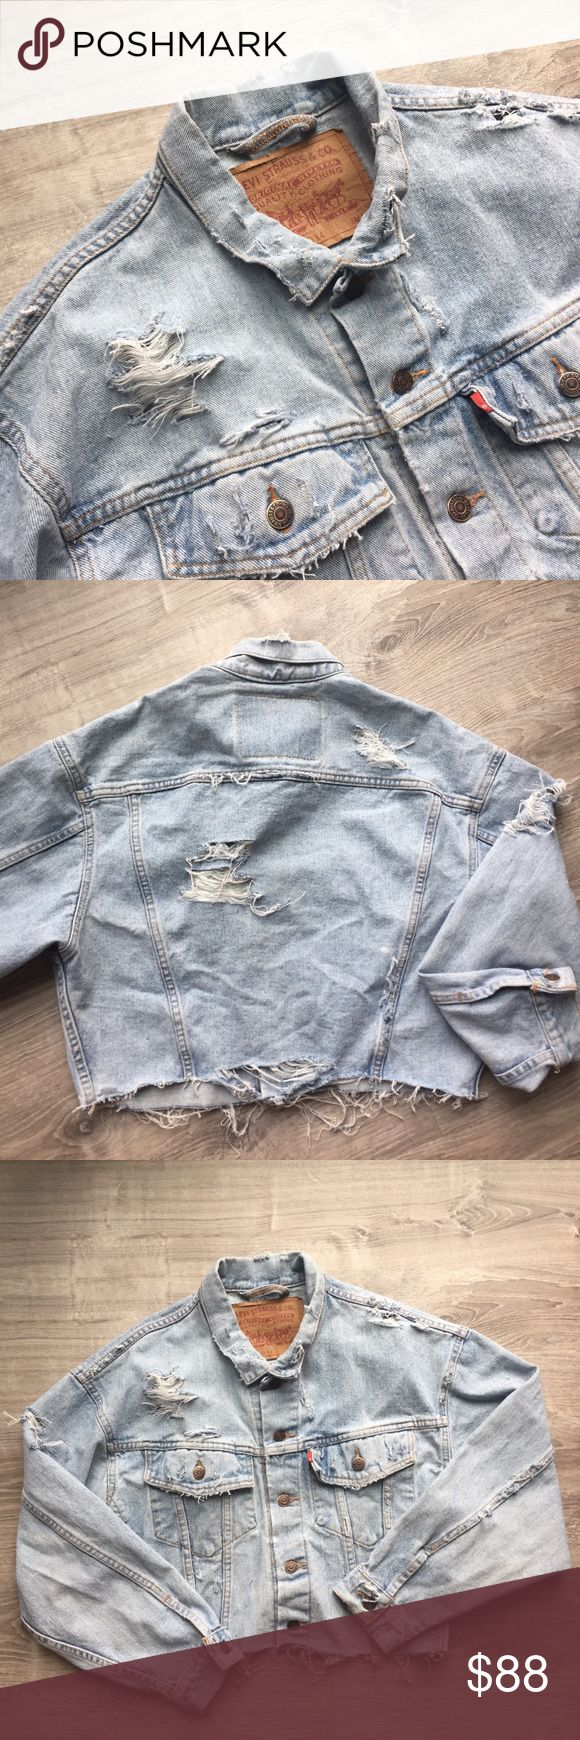 light wash distressed Levi's denim jacket decided to crop & distress this gem myself 🤷‍♀️ love the way it turned out. a men's small, so it's an oversized fit on me Levi's Jackets & Coats Jean Jackets